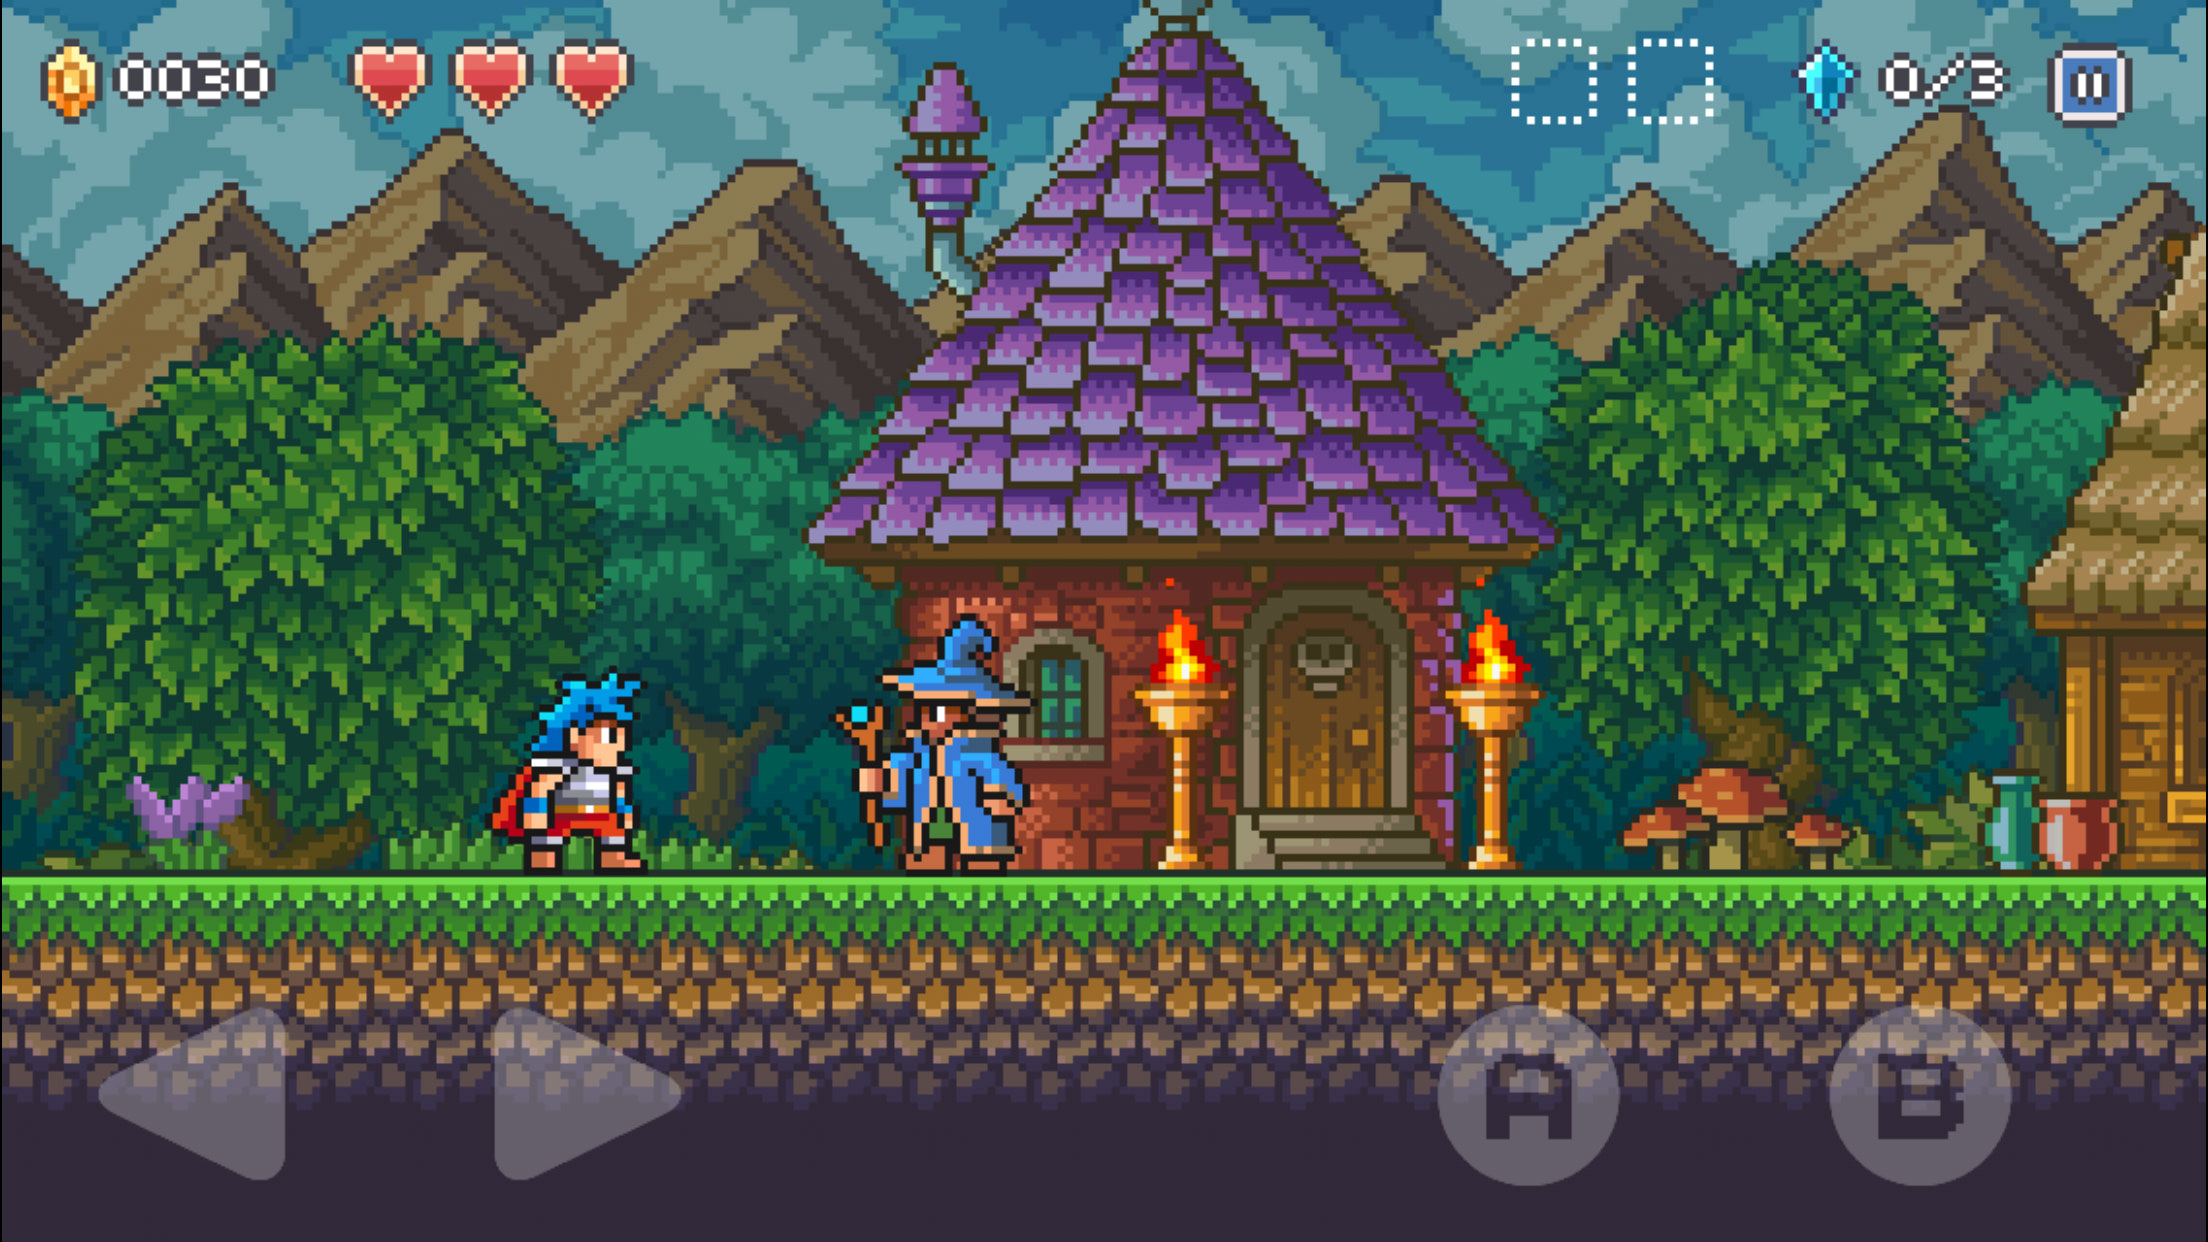 Retro platformer Goblin Sword updated with 16 new levels, MFi controller support and more